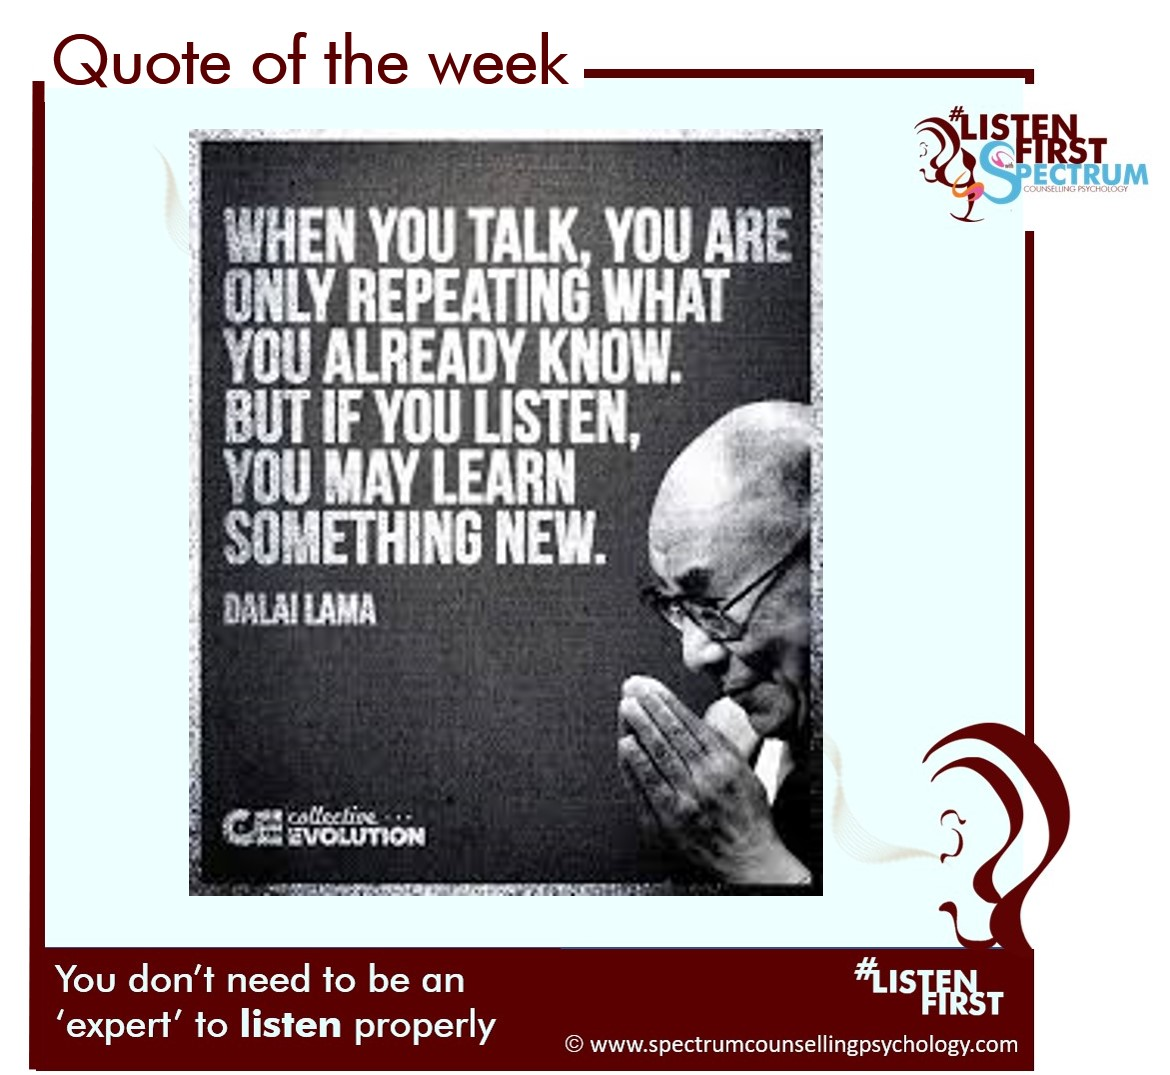 Quote of the week 3